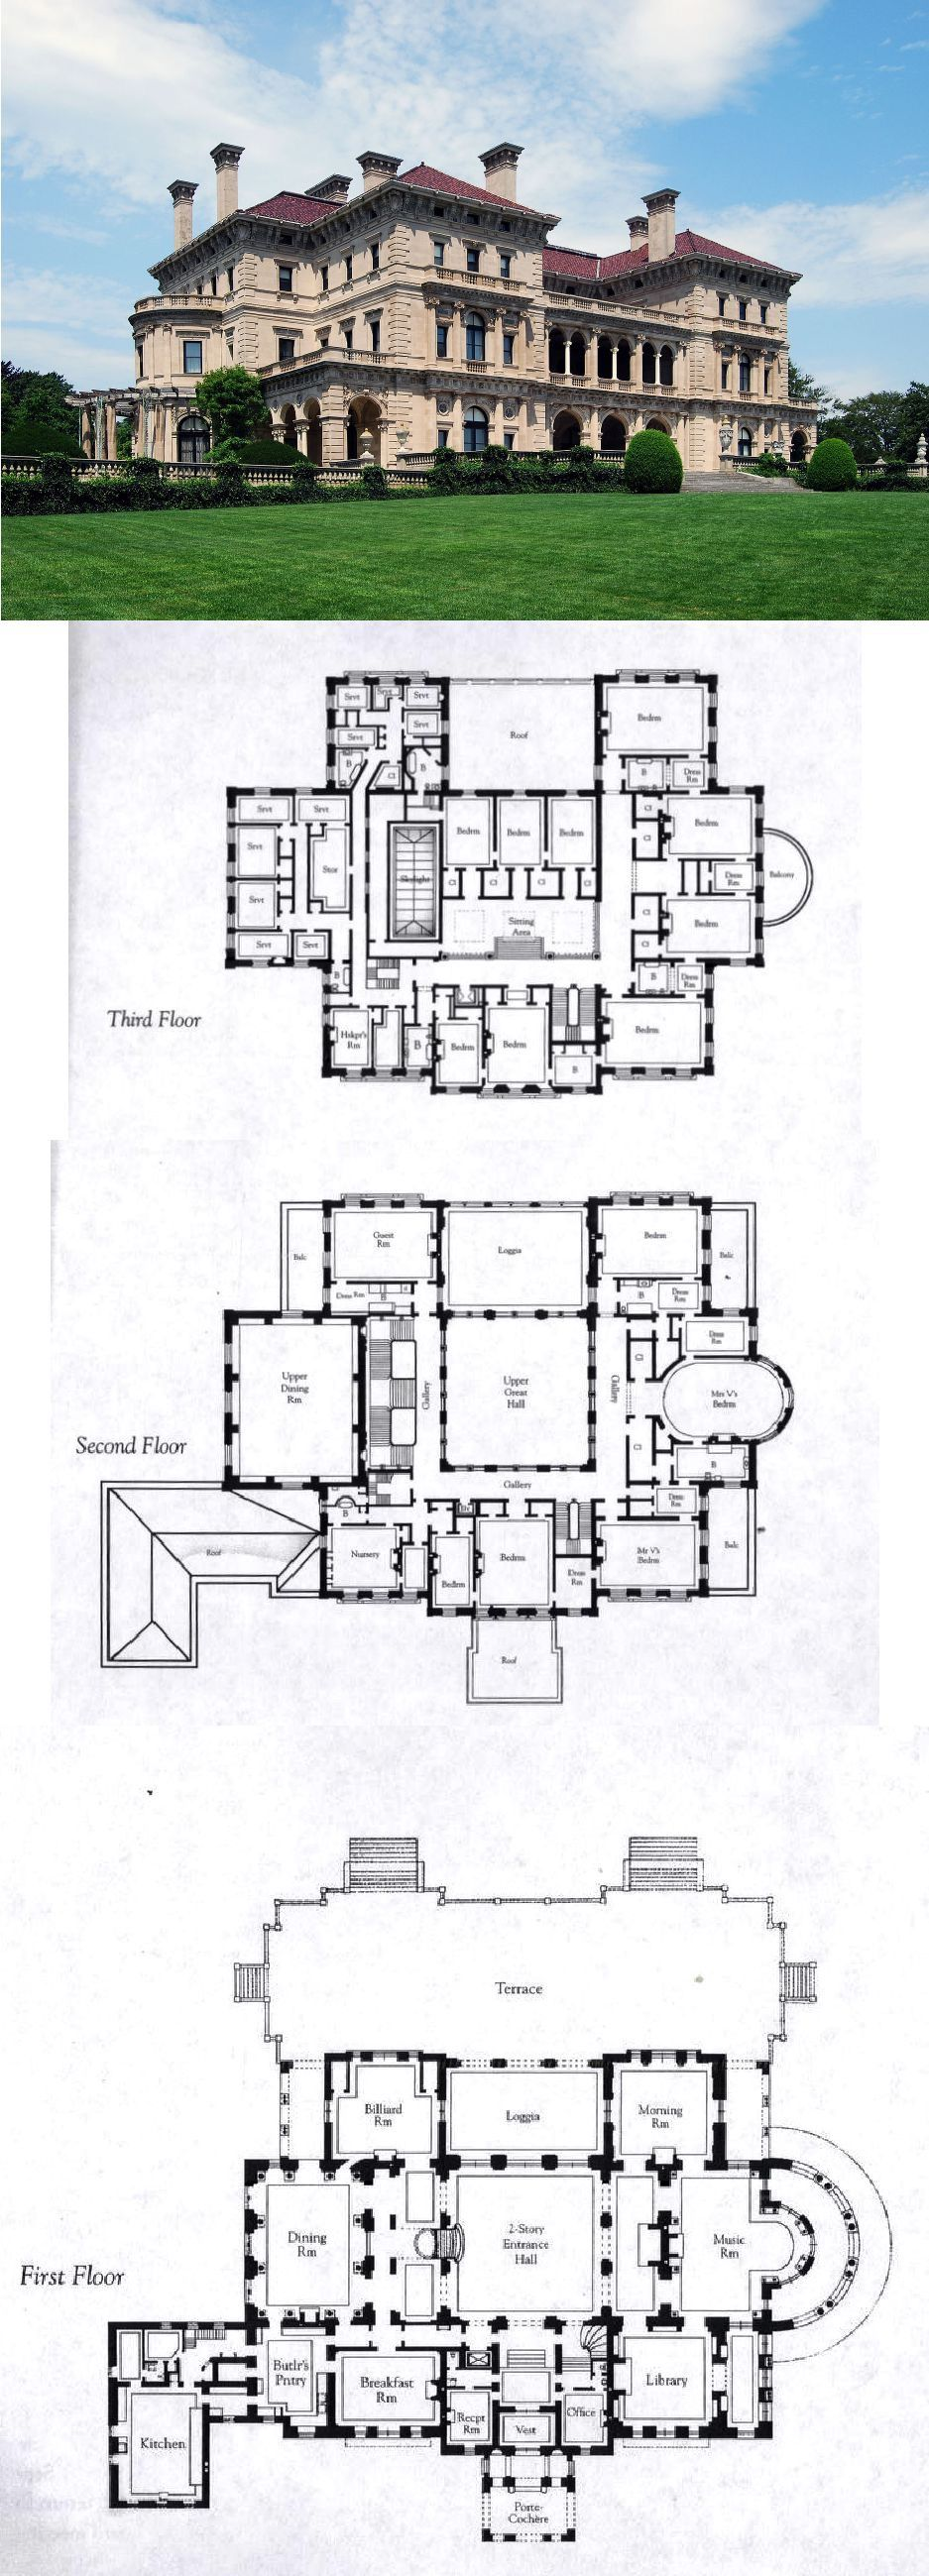 Floorplans For Gilded Age Mansions Skyscraperpage Forum The Breakers Newport Rhode Island House Plans Mansion Mansion Floor Plan Castle Floor Plan